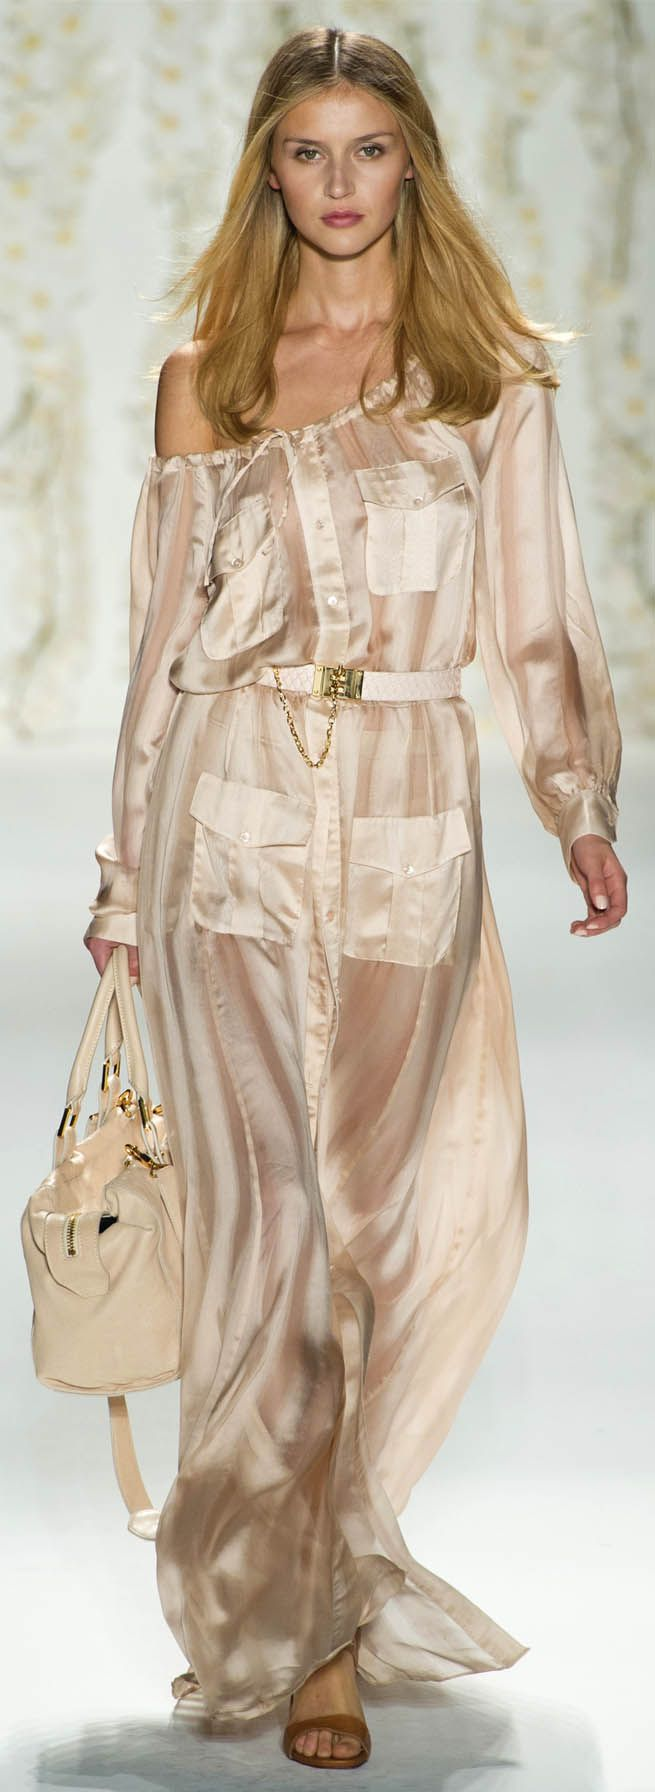 #Rachel Zoe Spring Summer 2013 Ready-To-Wear Collection #Trend Neutrals #Trend Maxi